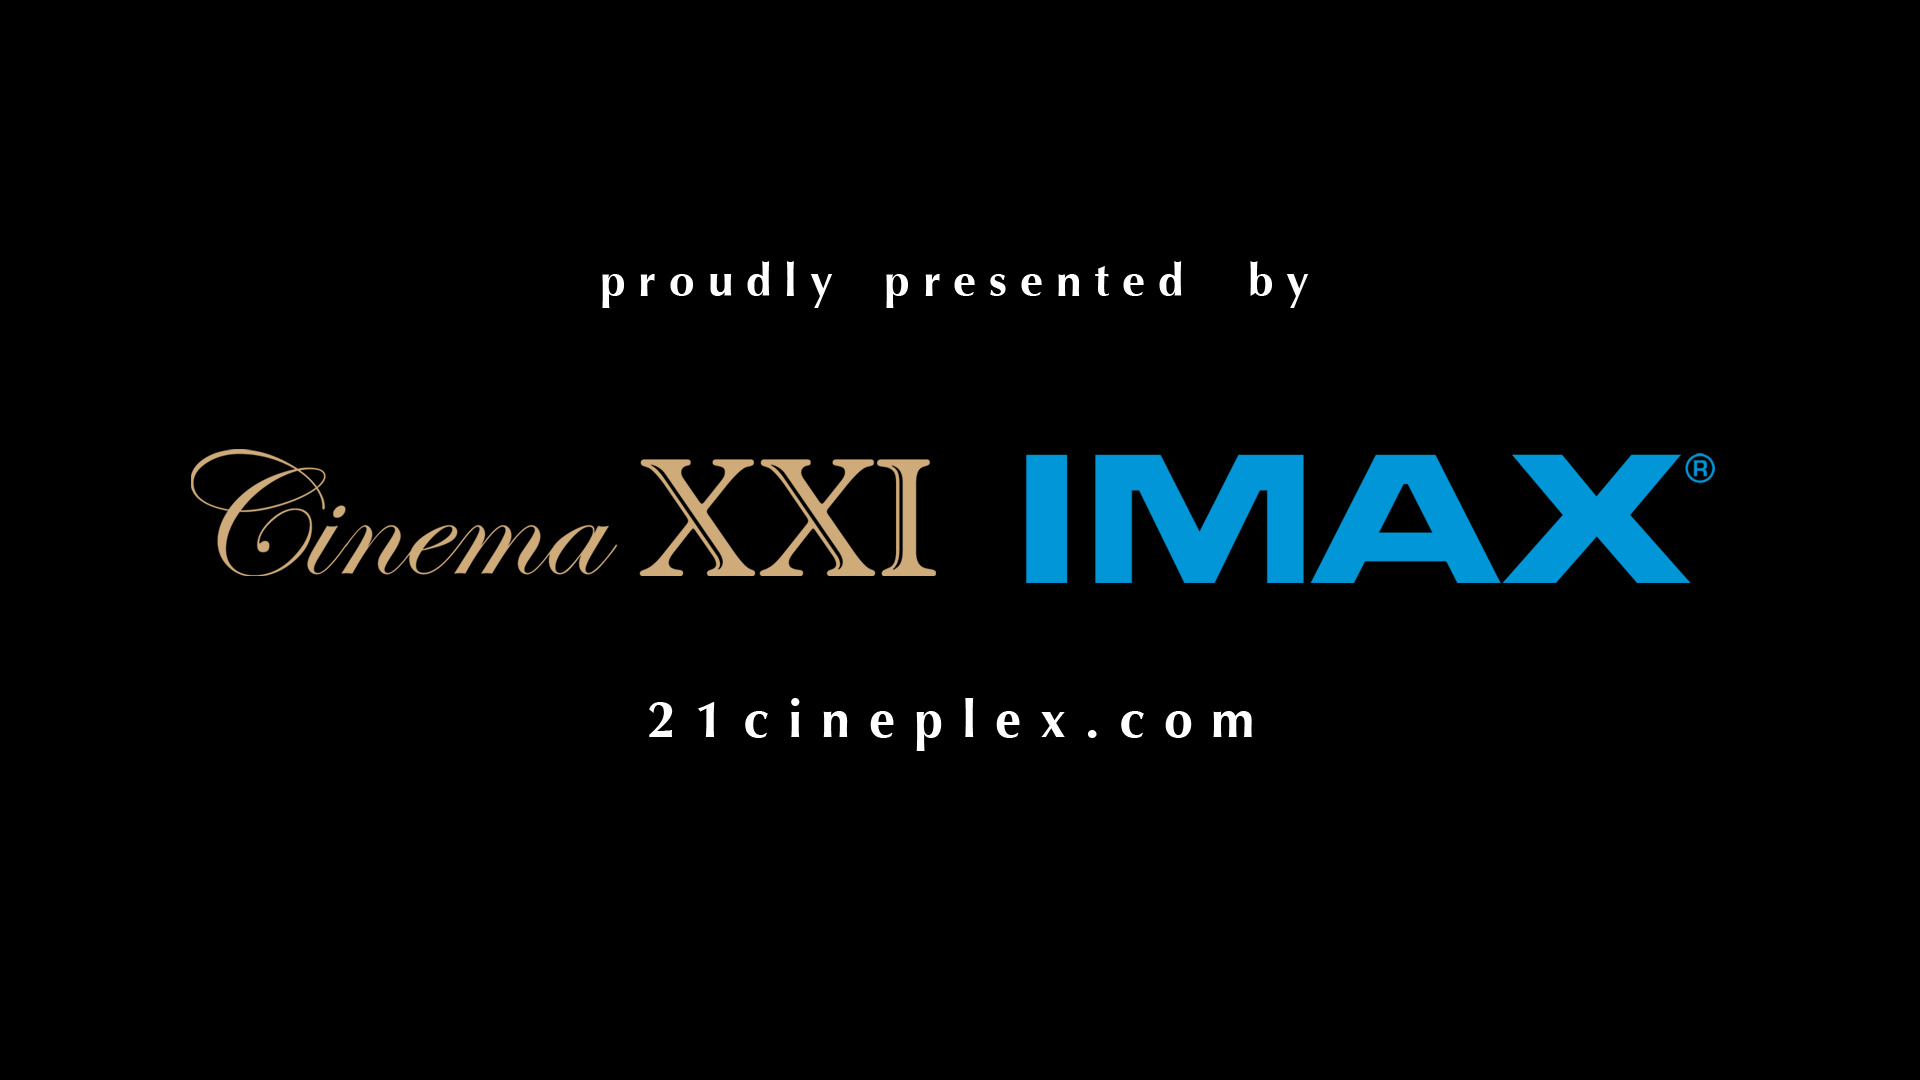 Cinema Xxi On Twitter Be The First To Experience Imax Imax 3d